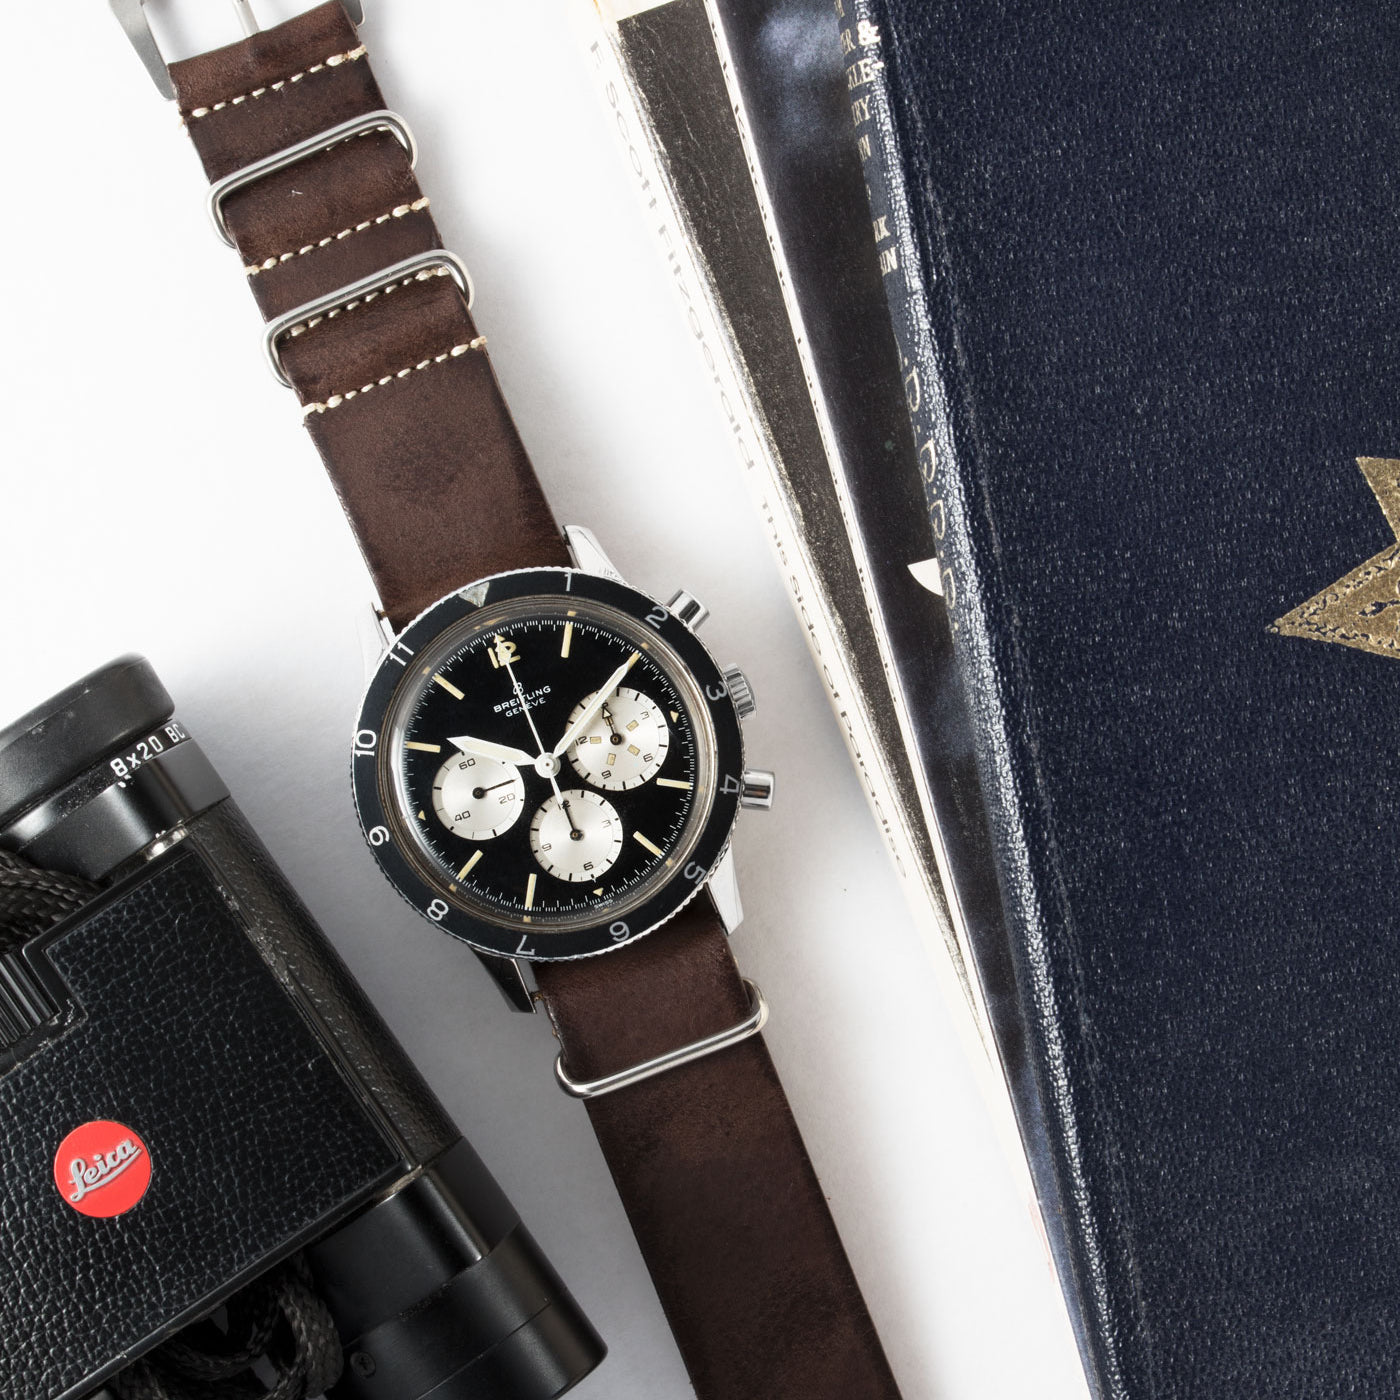 JPM X S.Song Dark Brown Smooth Leather NATO